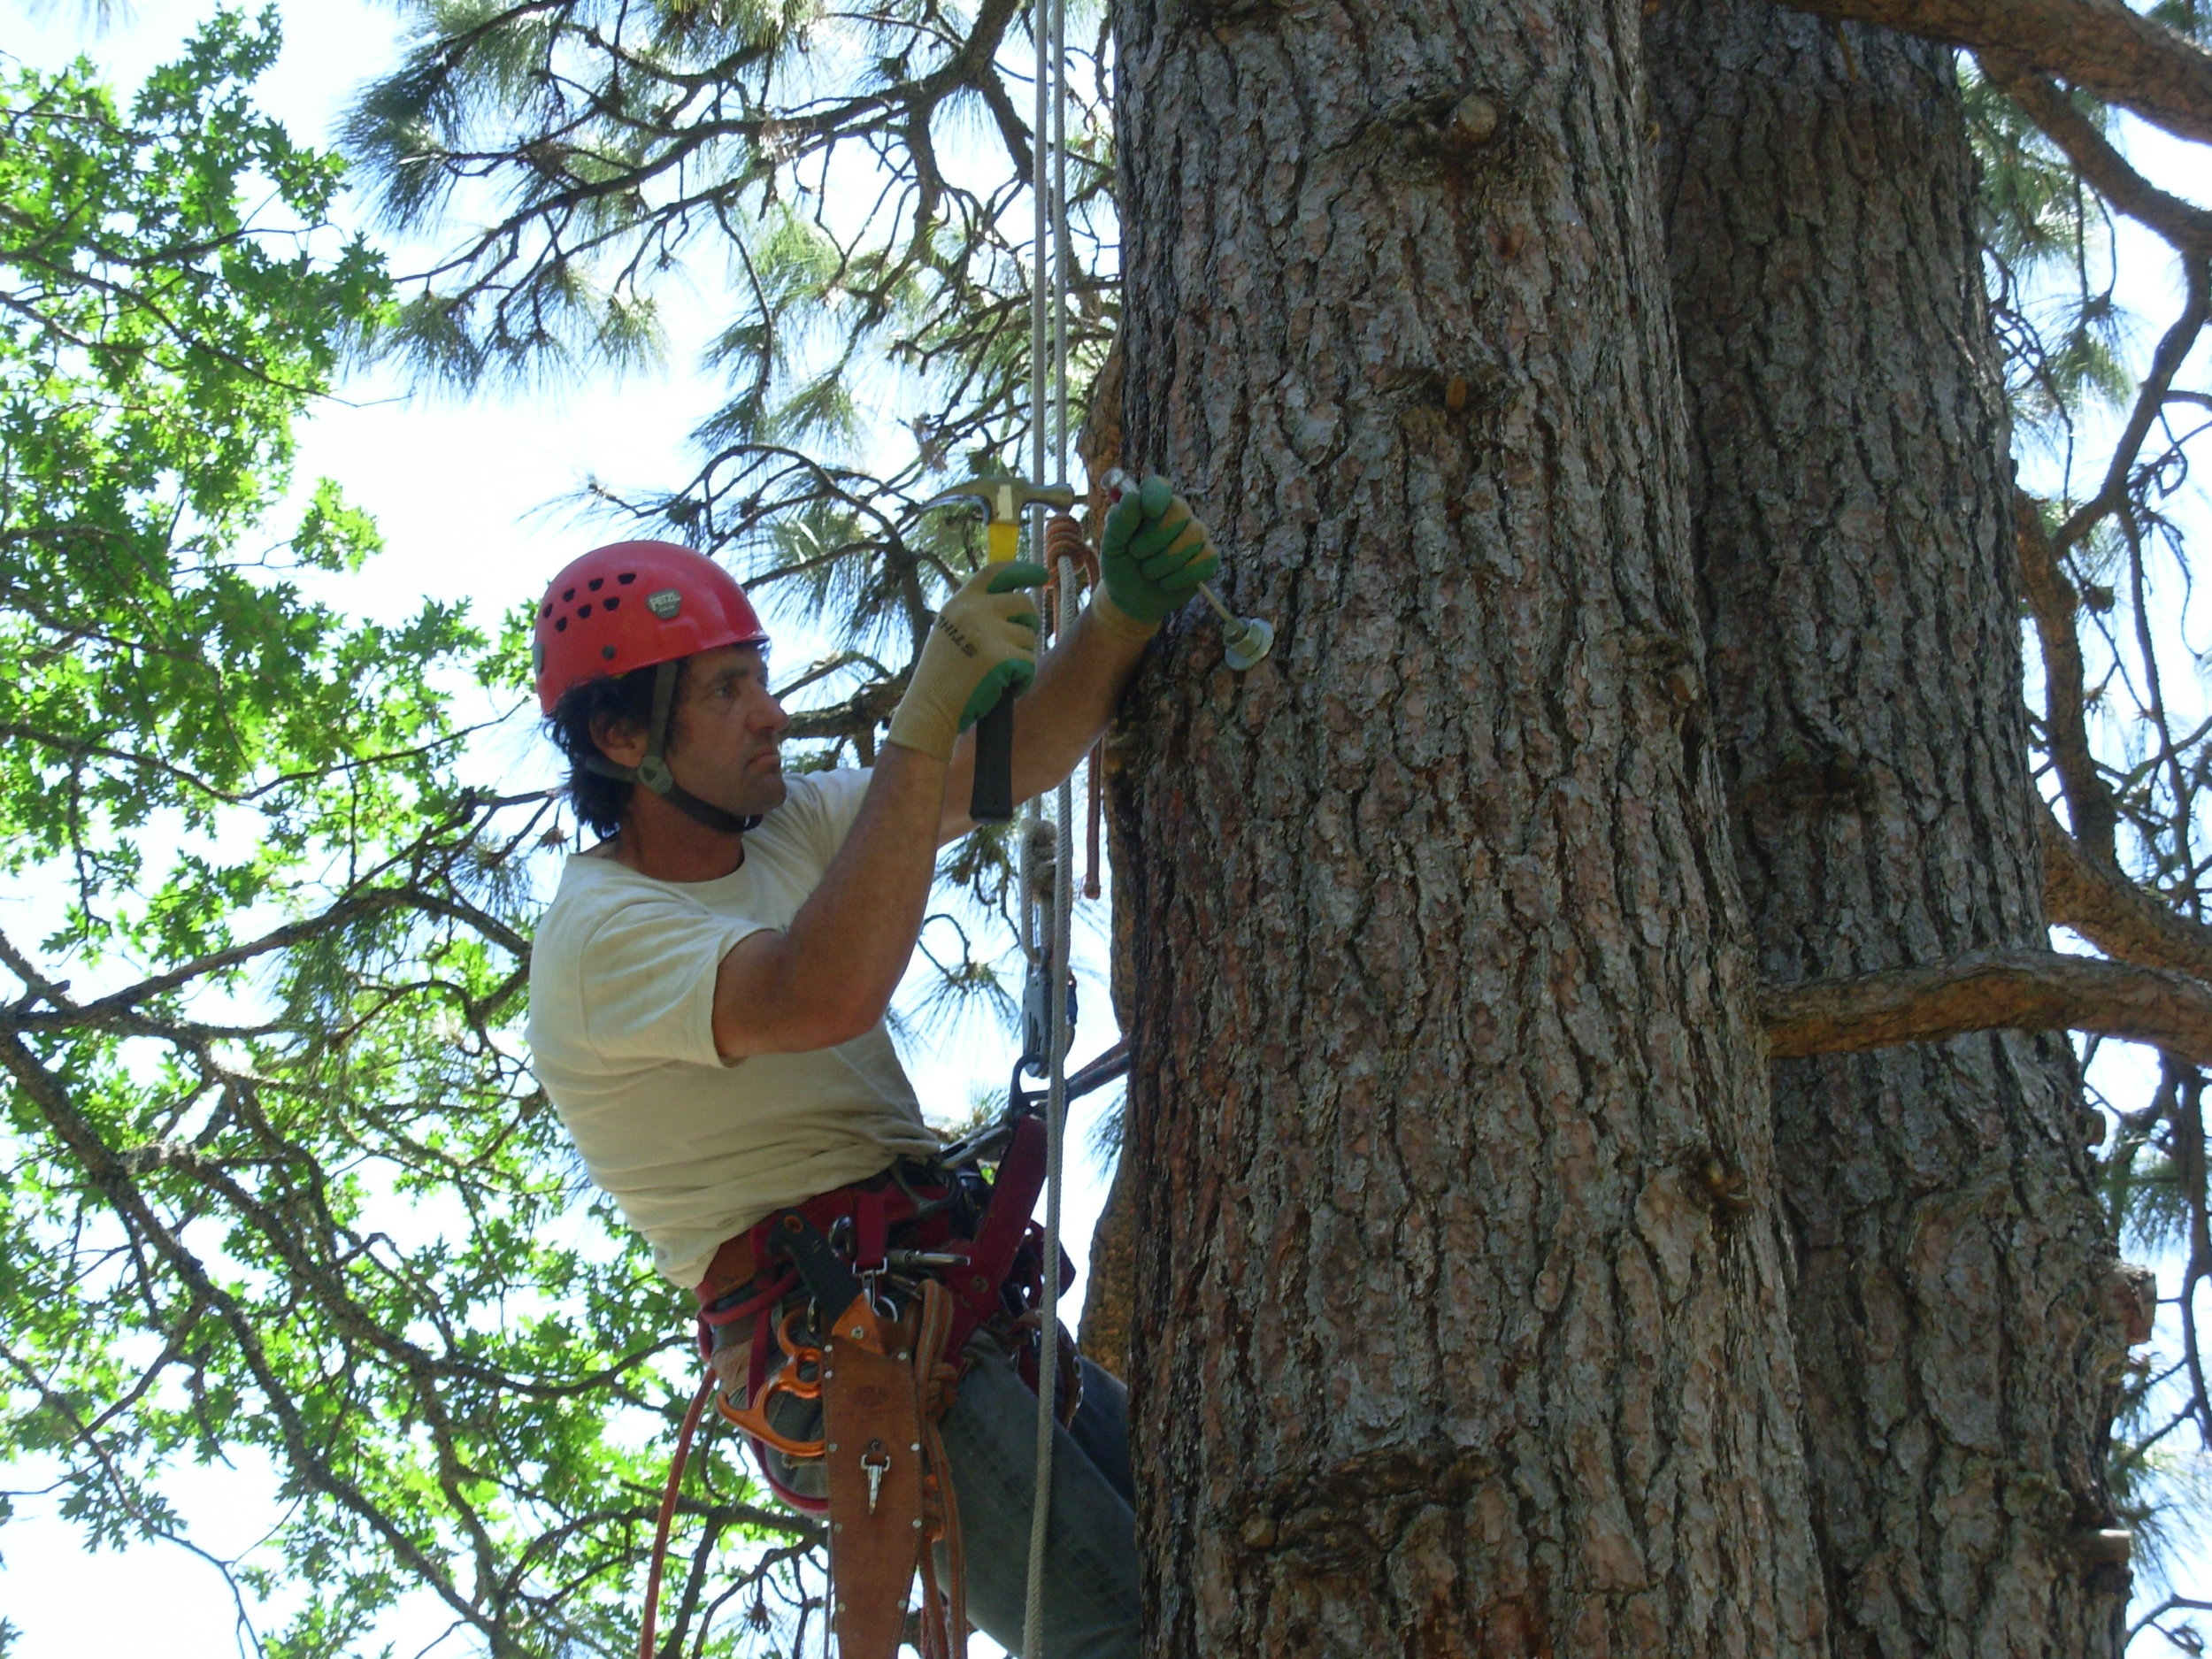 gorge-tree-services-cable-bracing-safety-bolts-harness-installation.jpg